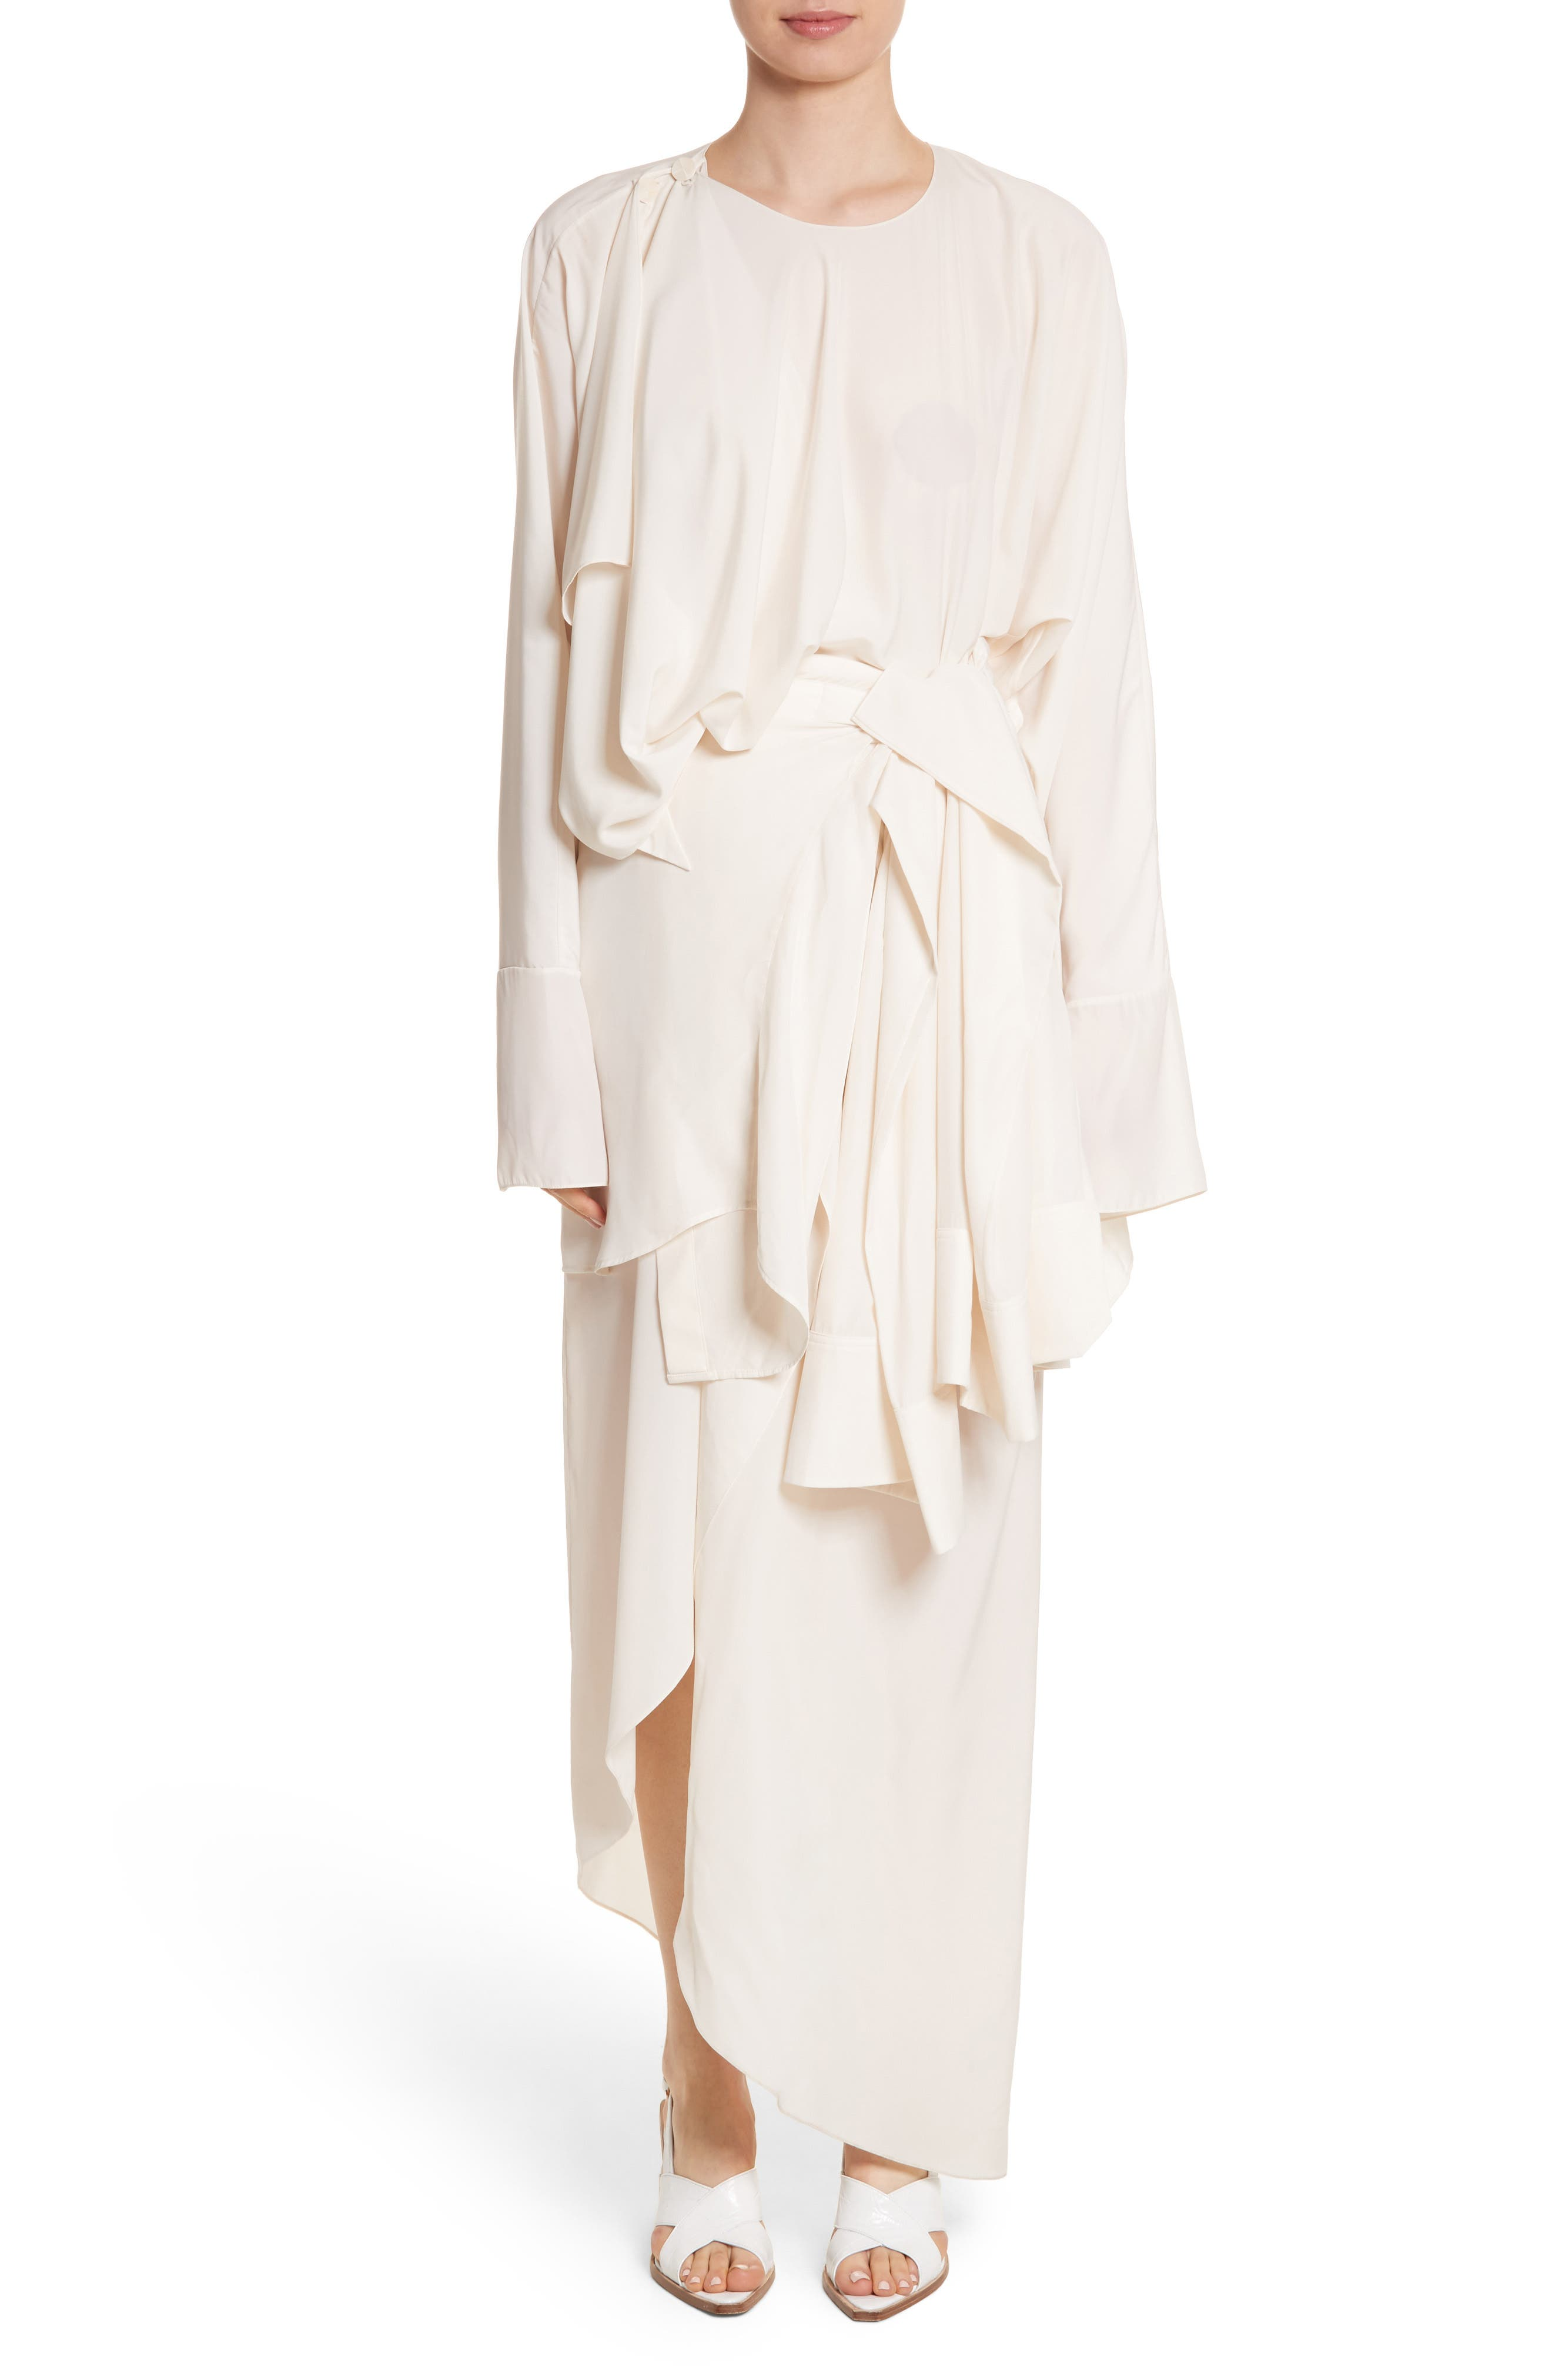 A.W.A.K.E. Asymmetrical Draped Dress